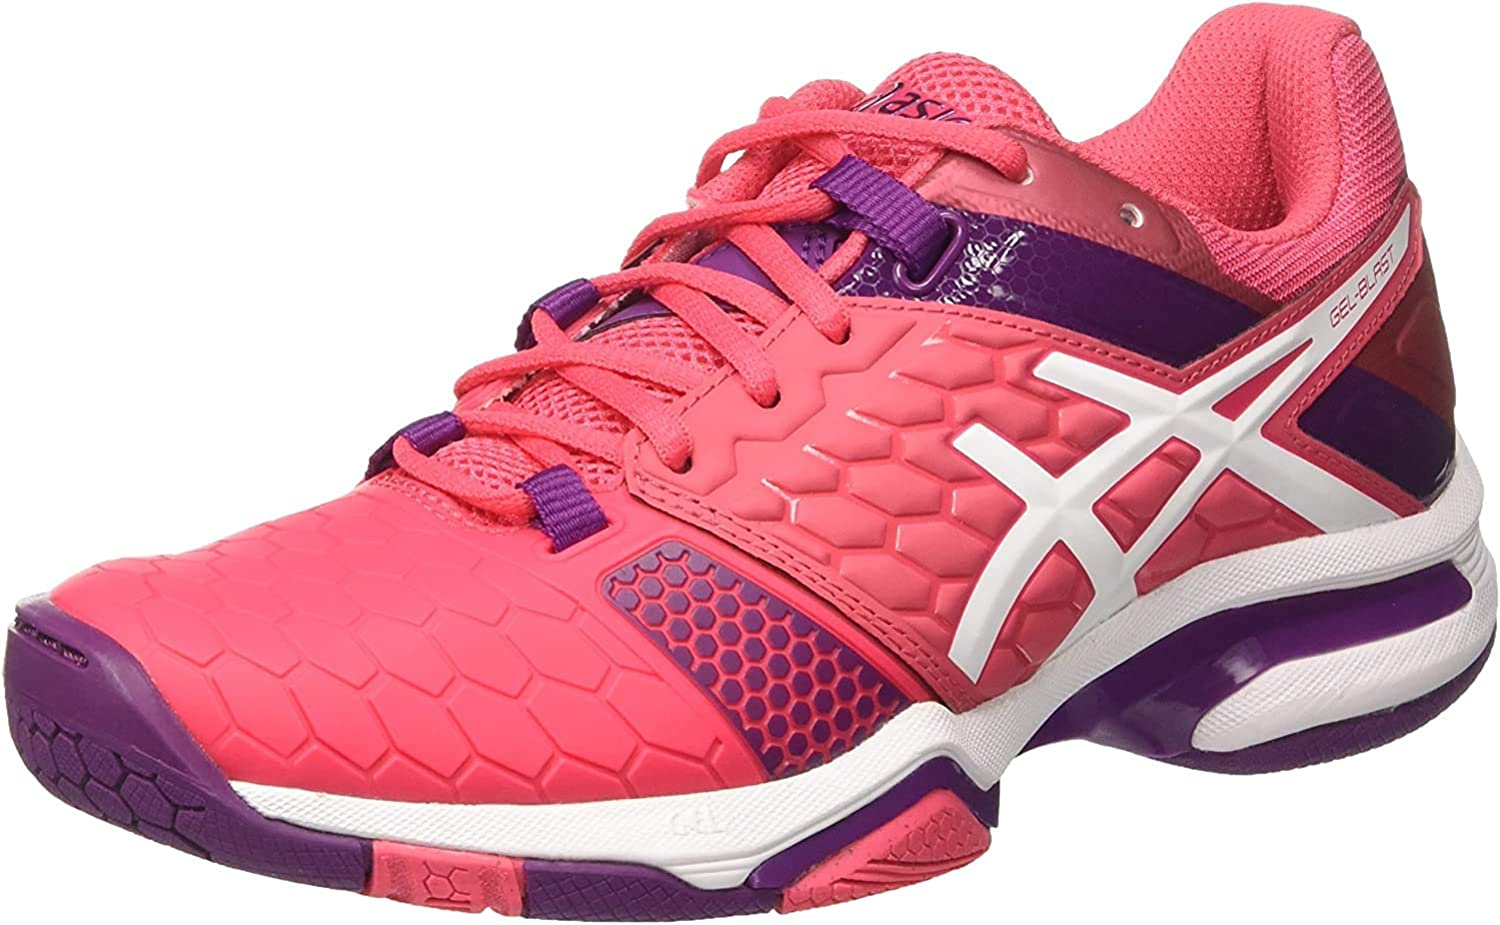 Asics Gel-Blast 7, Zapatos de Balonmano Americano para Mujer, Multicolor (Rouge Red/White/Prune), 36 EU: Amazon.es: Zapatos y complementos